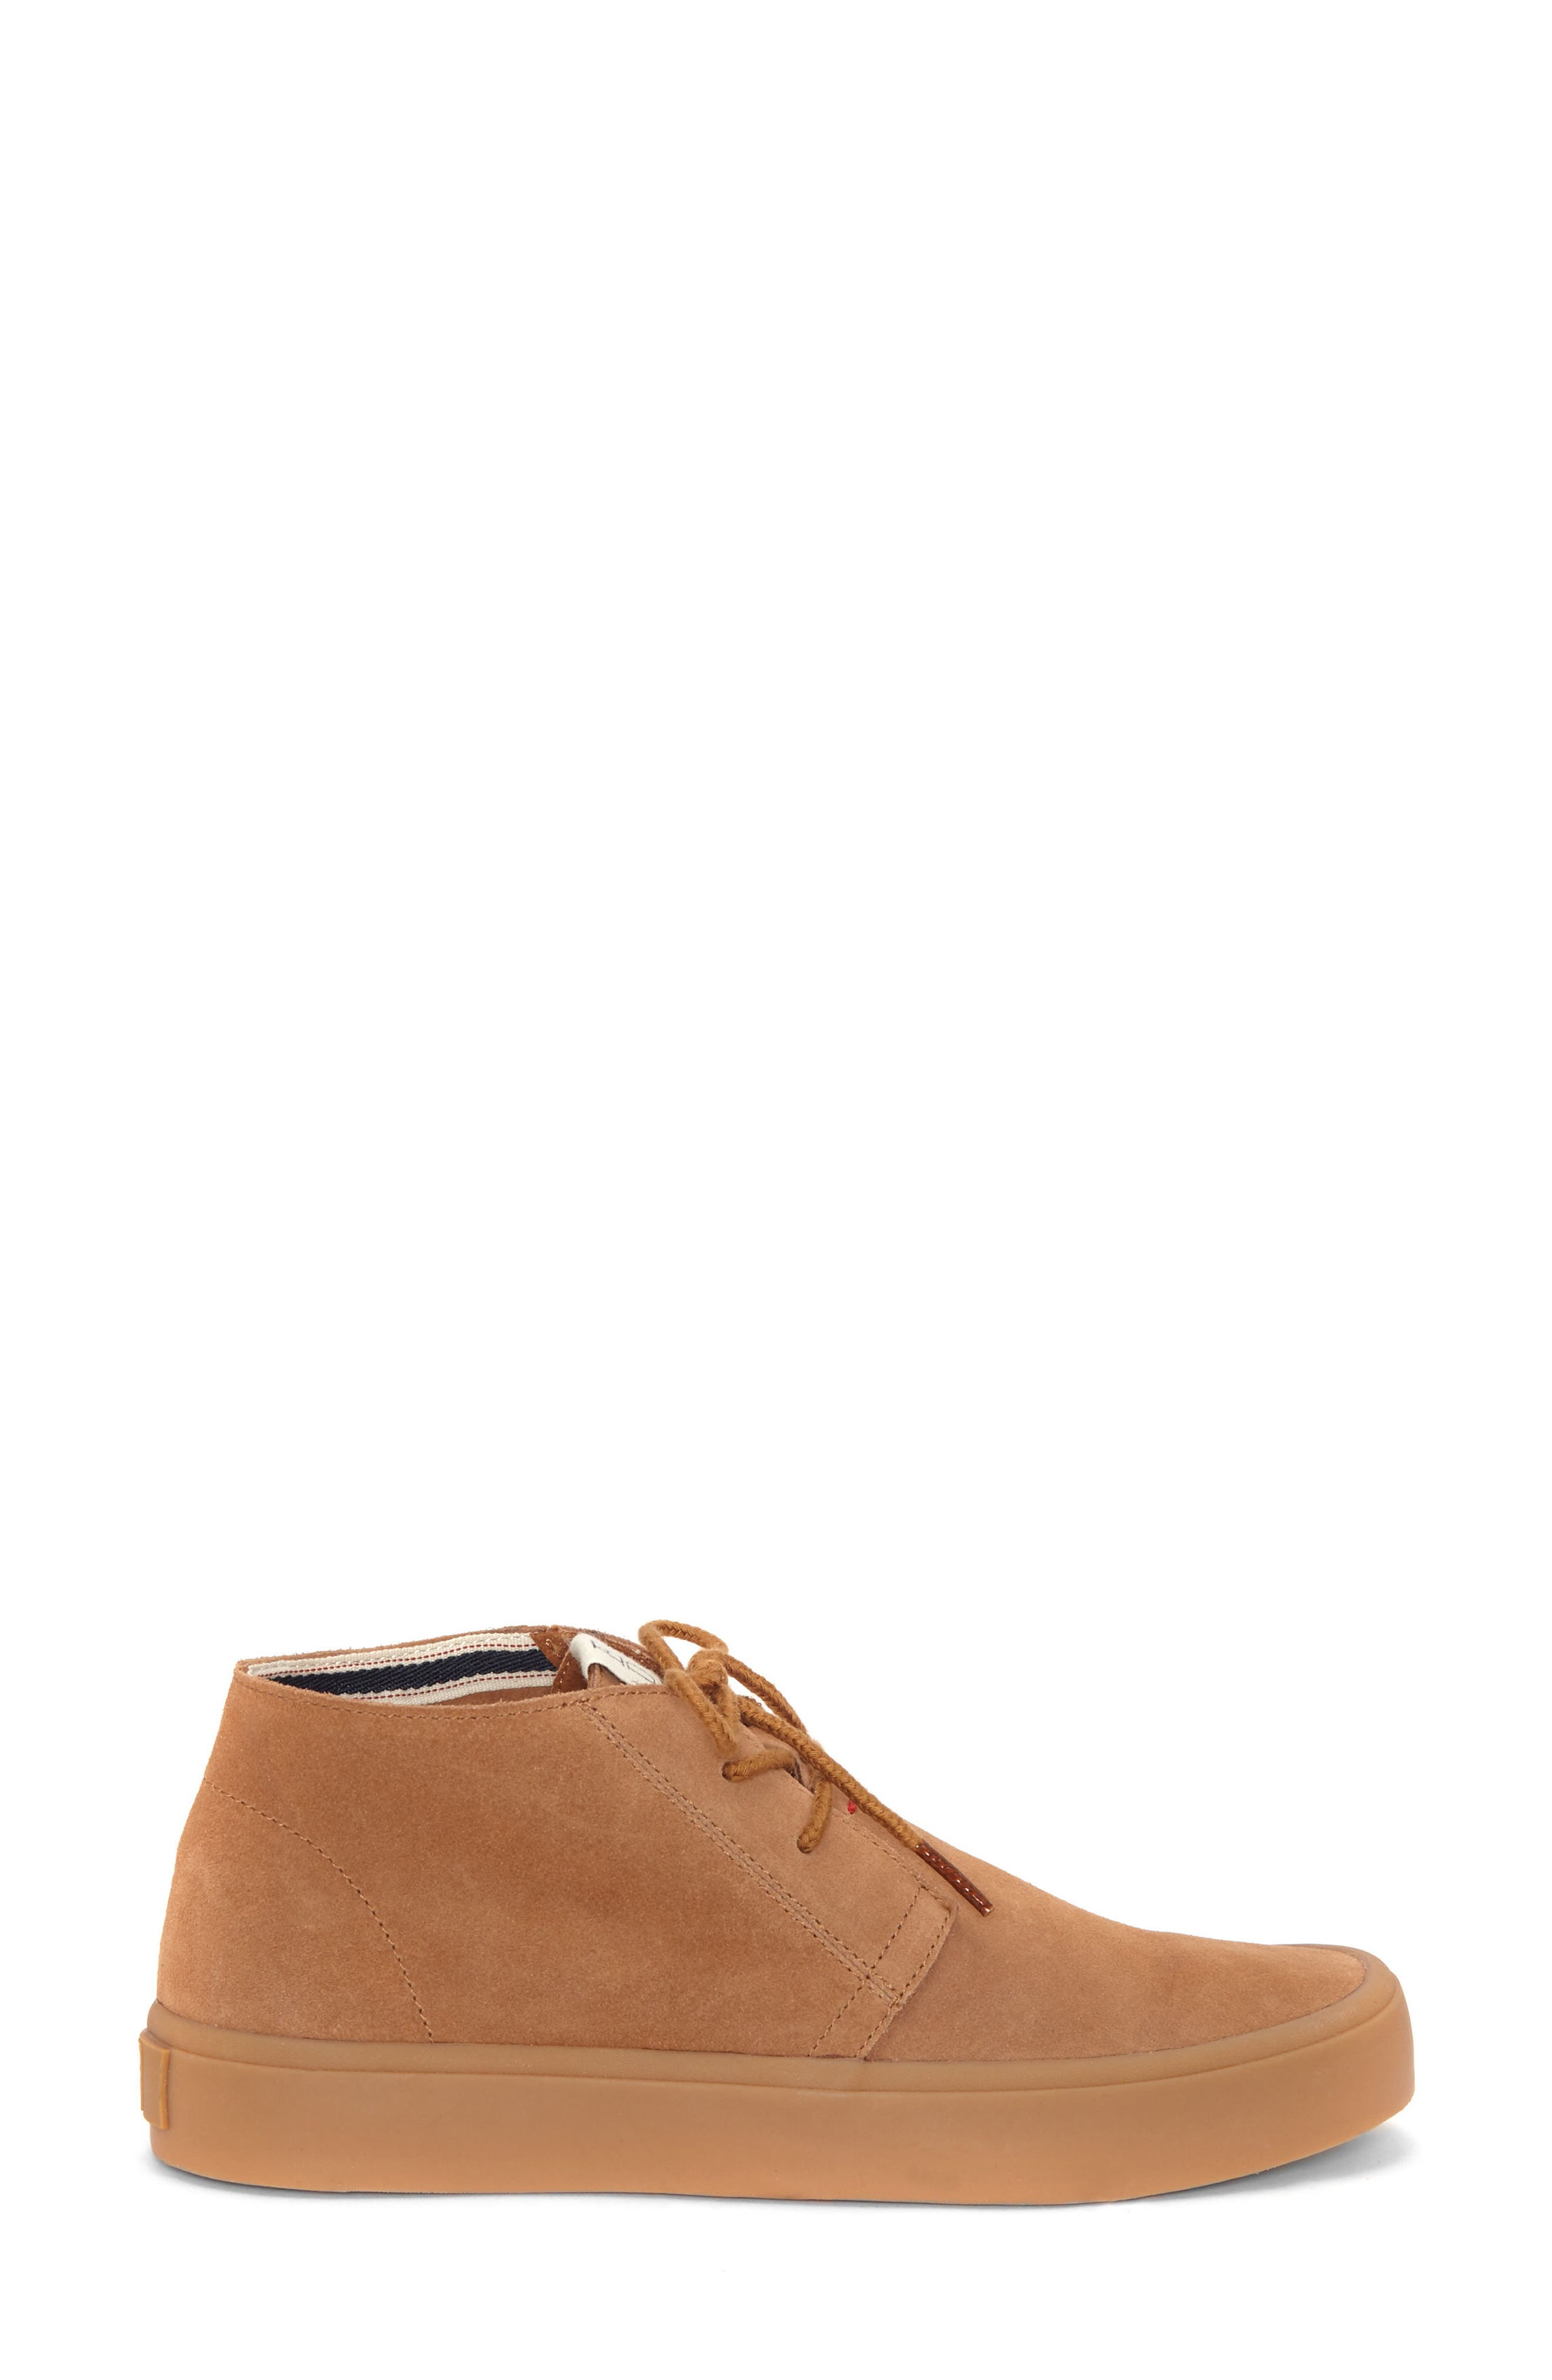 Dax Chukka Sneaker,                             Alternate thumbnail 3, color,                             Honey Suede